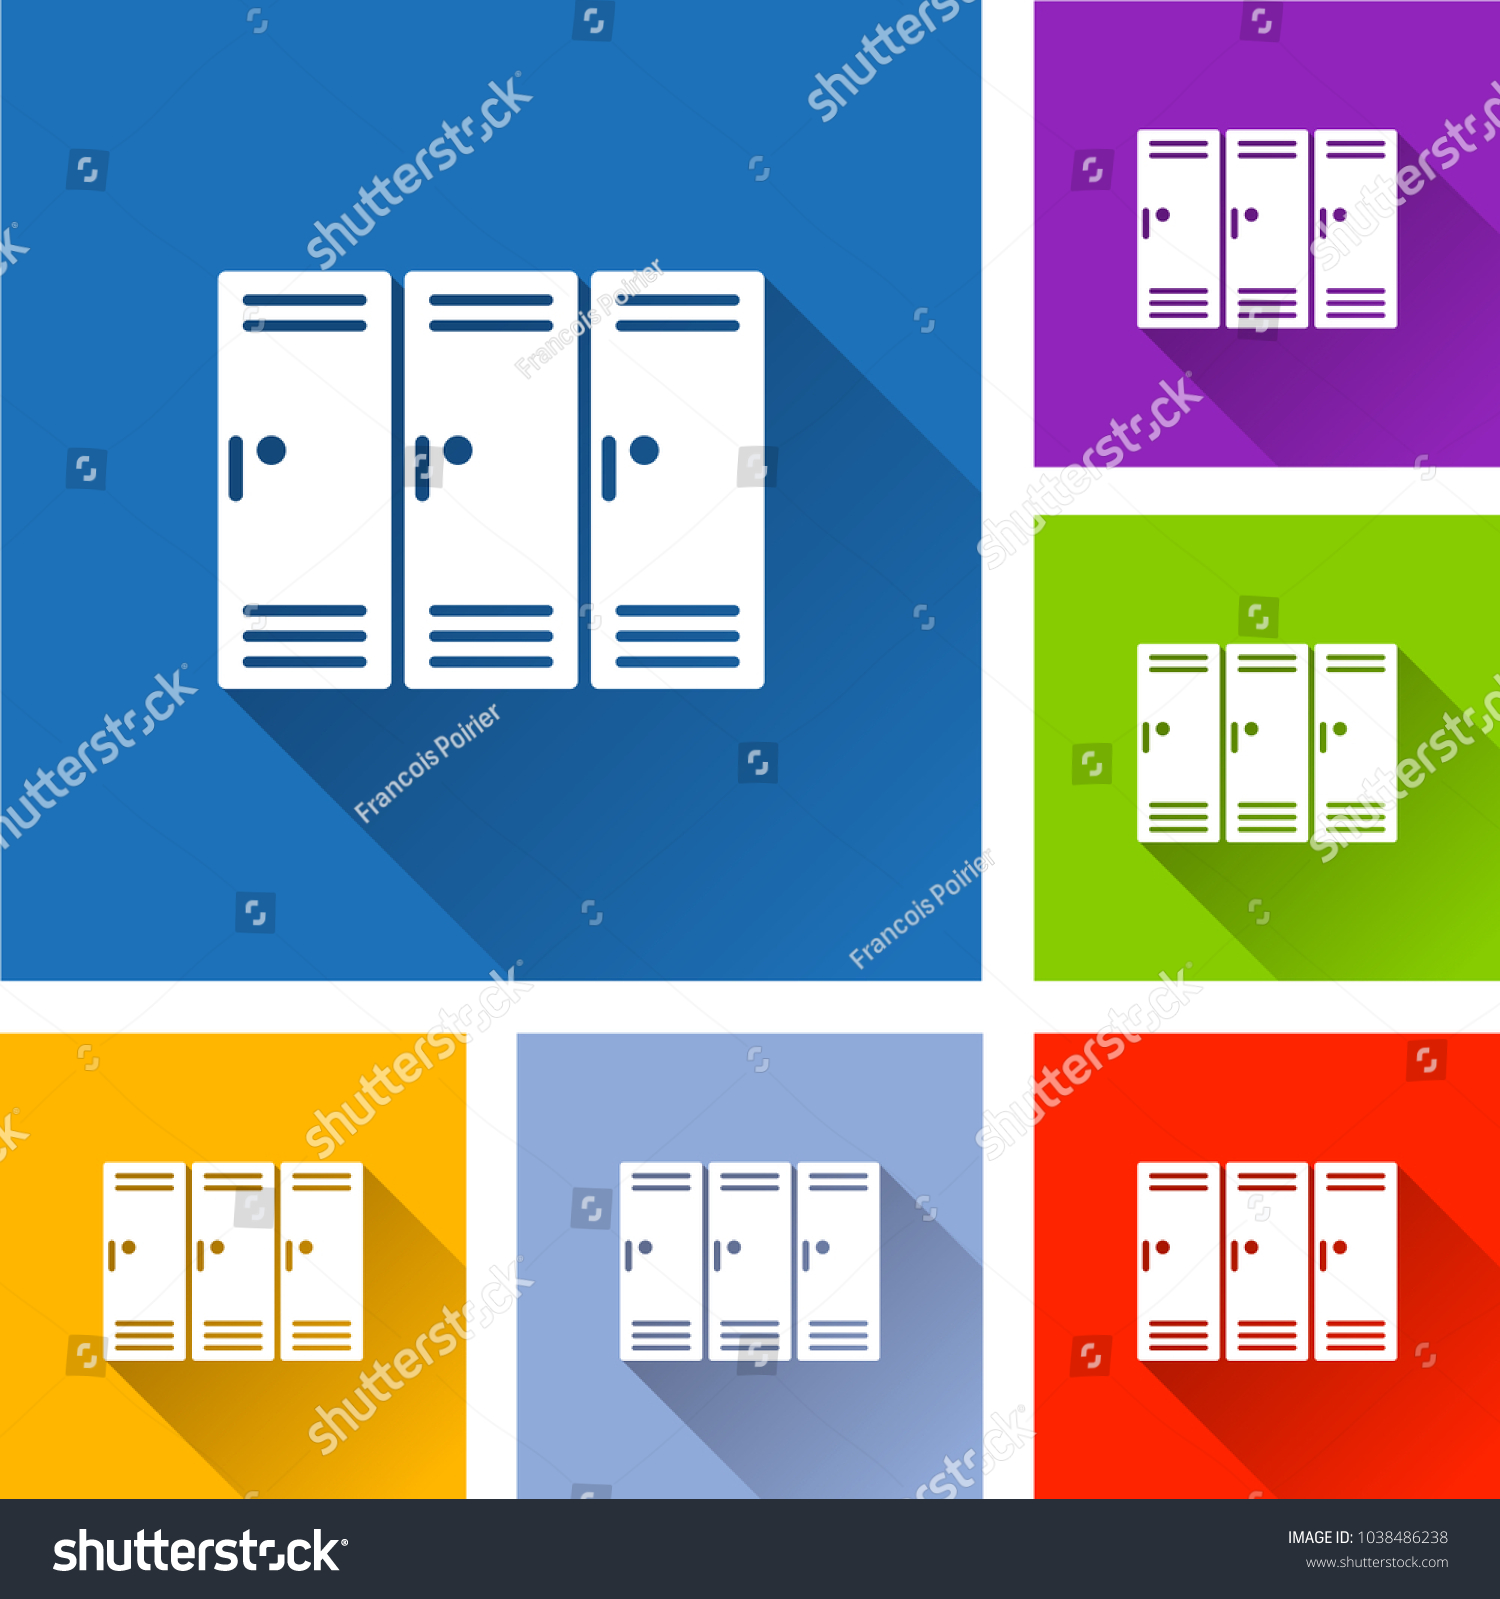 hight resolution of illustration of school locker icons with shadow